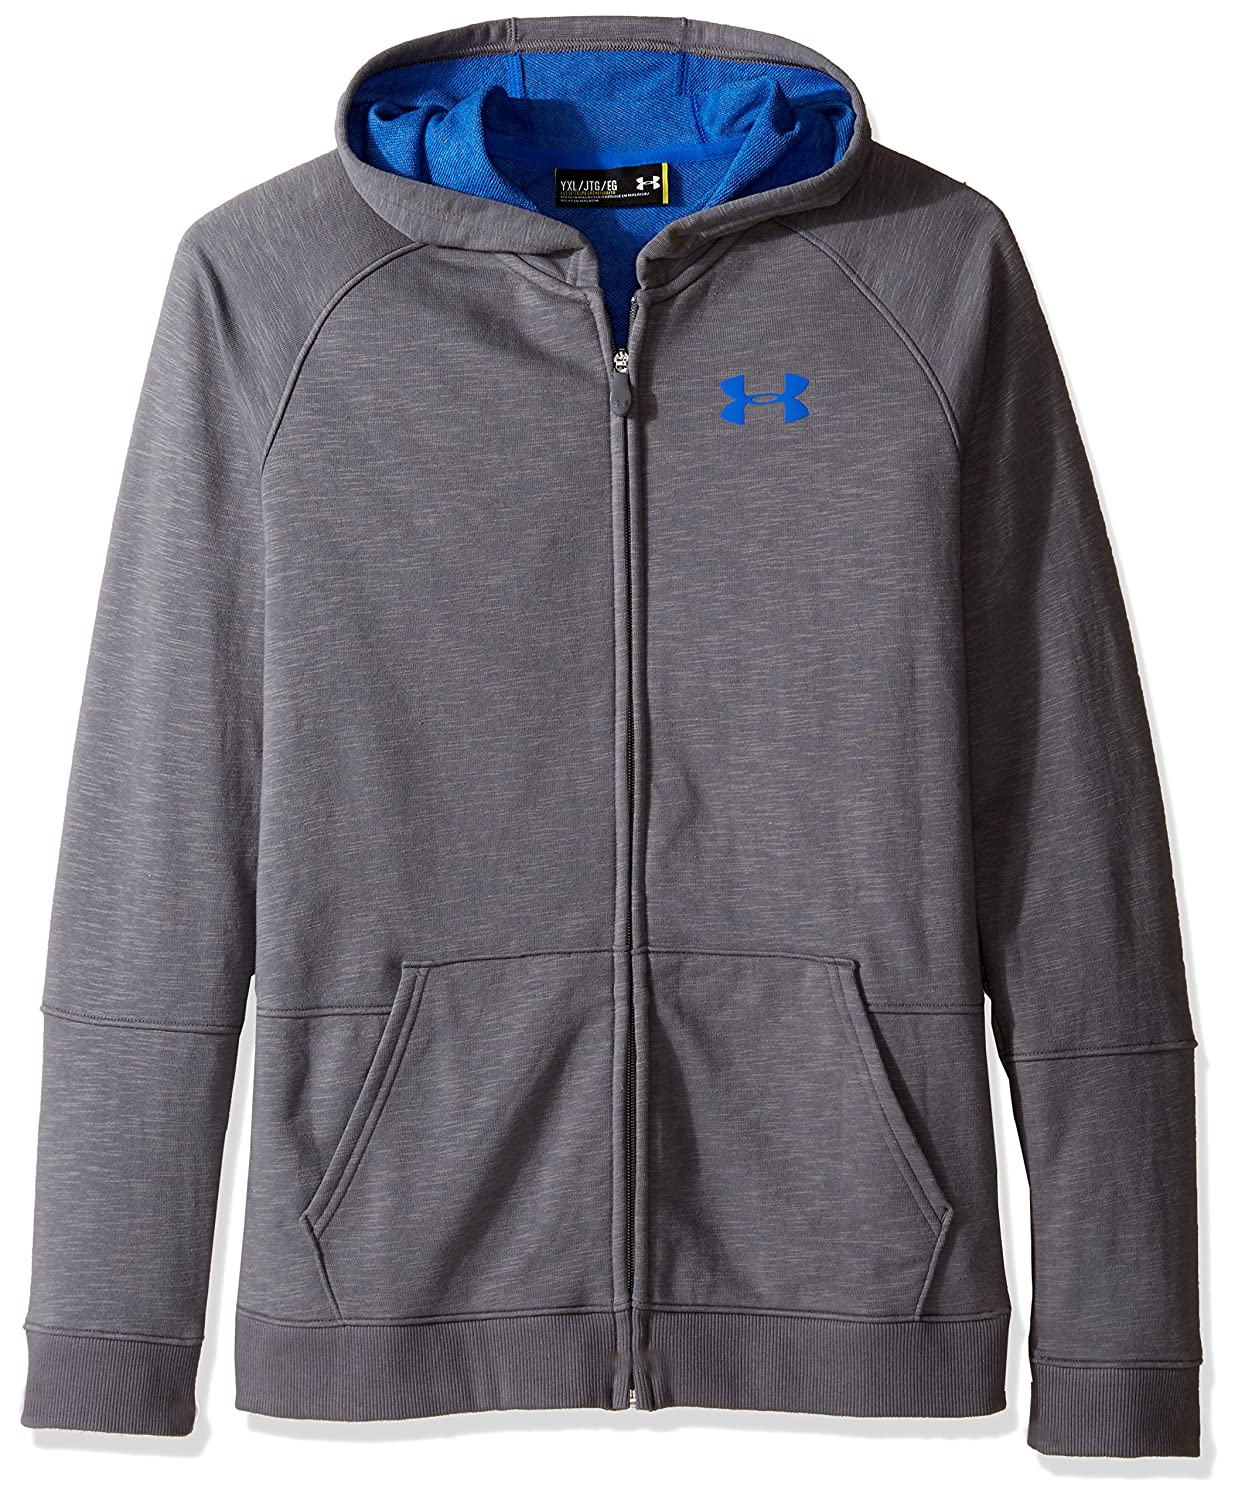 Under Armour Boys '選択FZ Hoody B01FWRYUGA Graphite Medium Heat (040) Youth X-Small